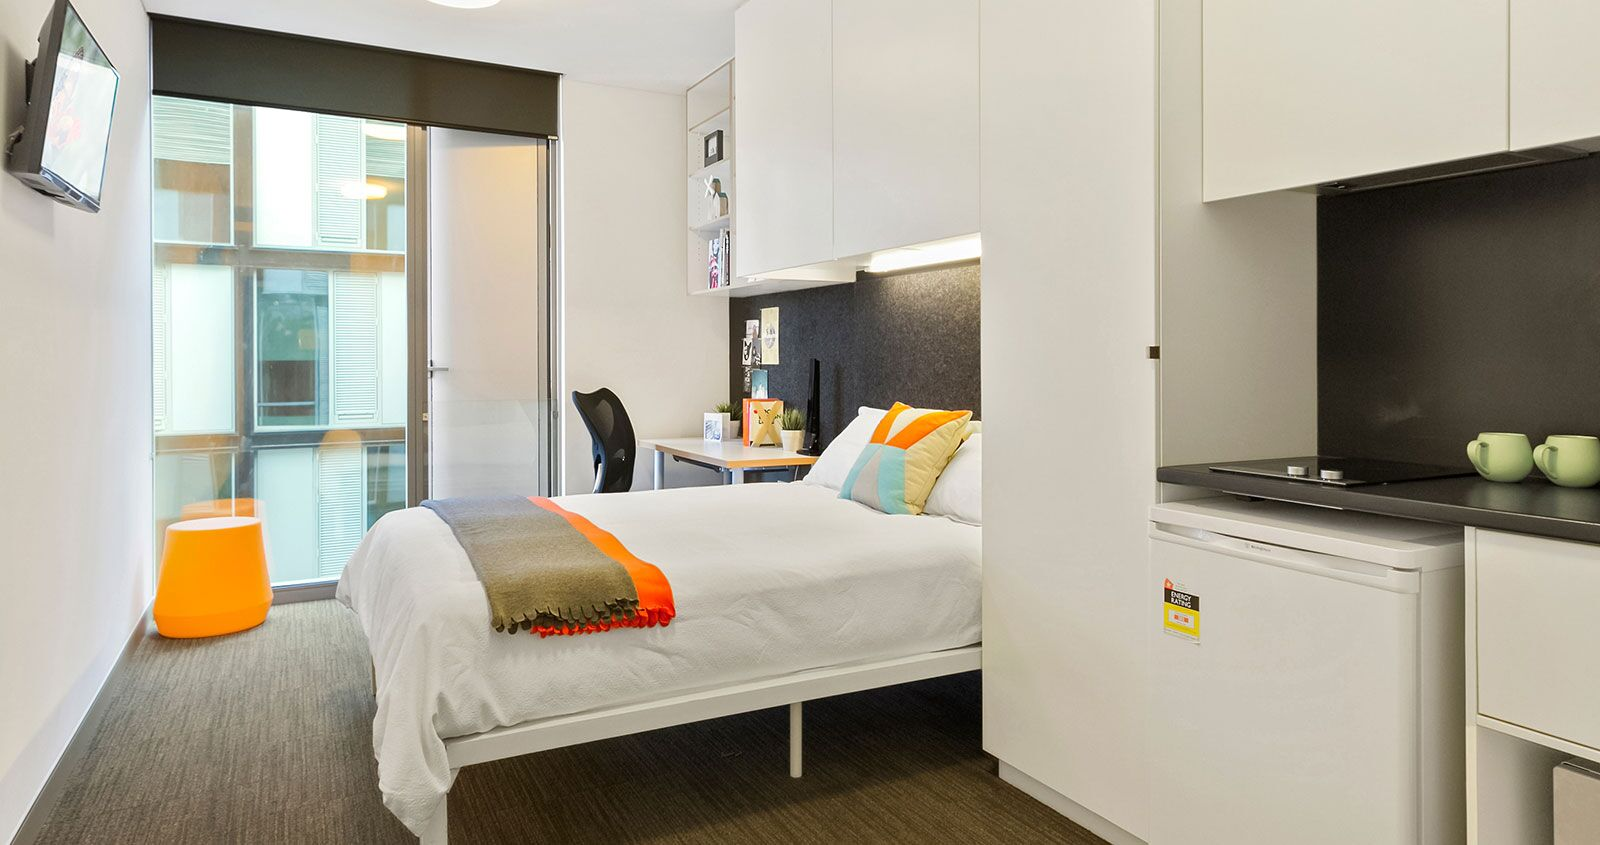 Studio Appartement Standard Studio Student Apartment Iglu Central Park Sydney